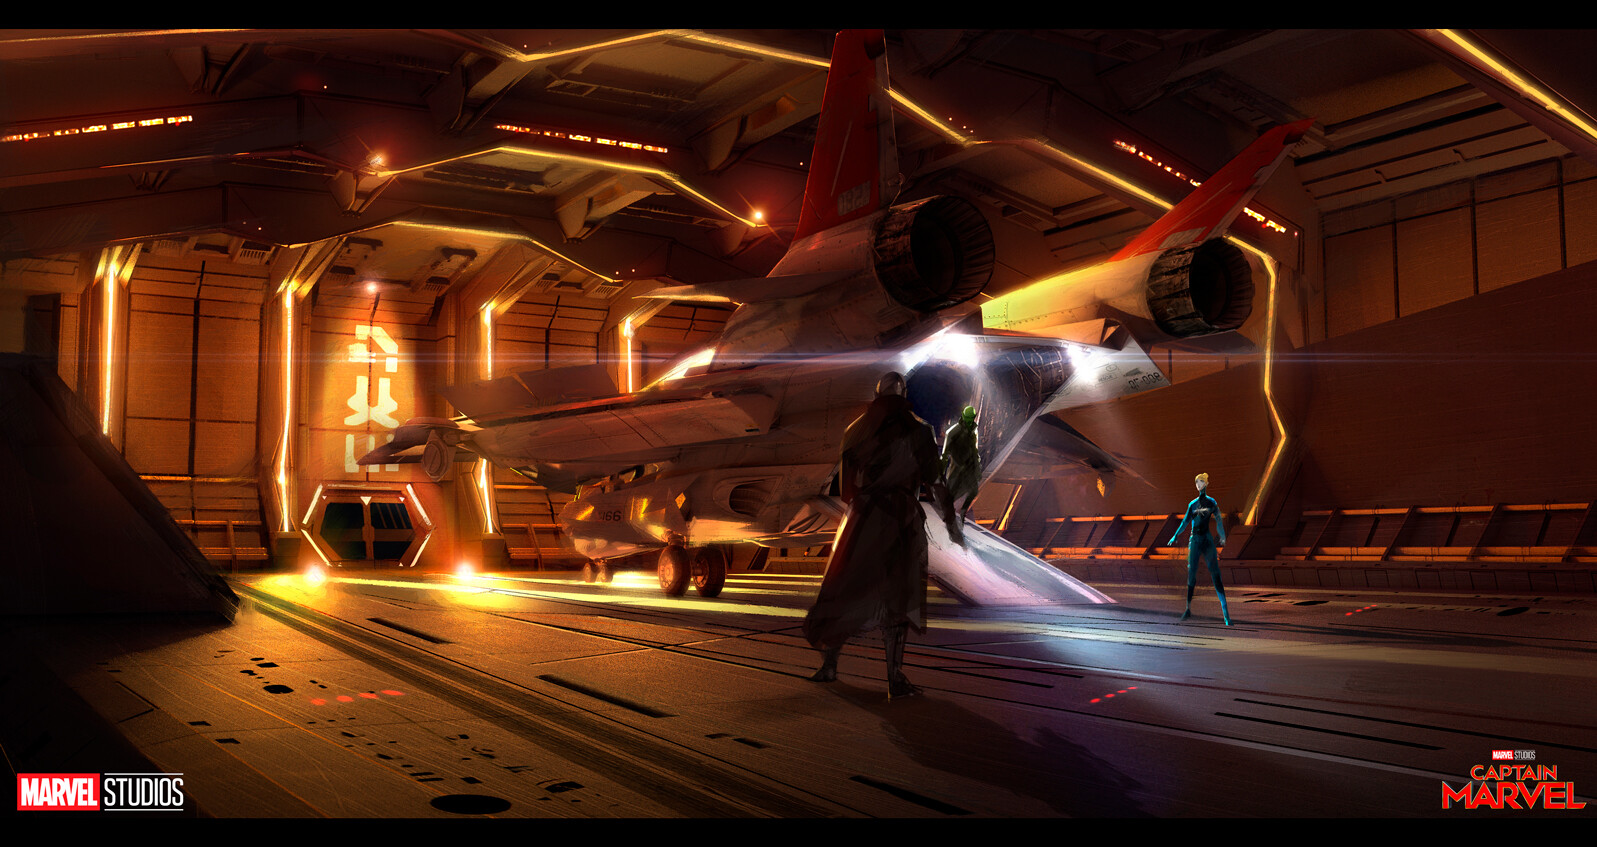 Pablo carpio captainmarvel marvelinterior keyframe pc